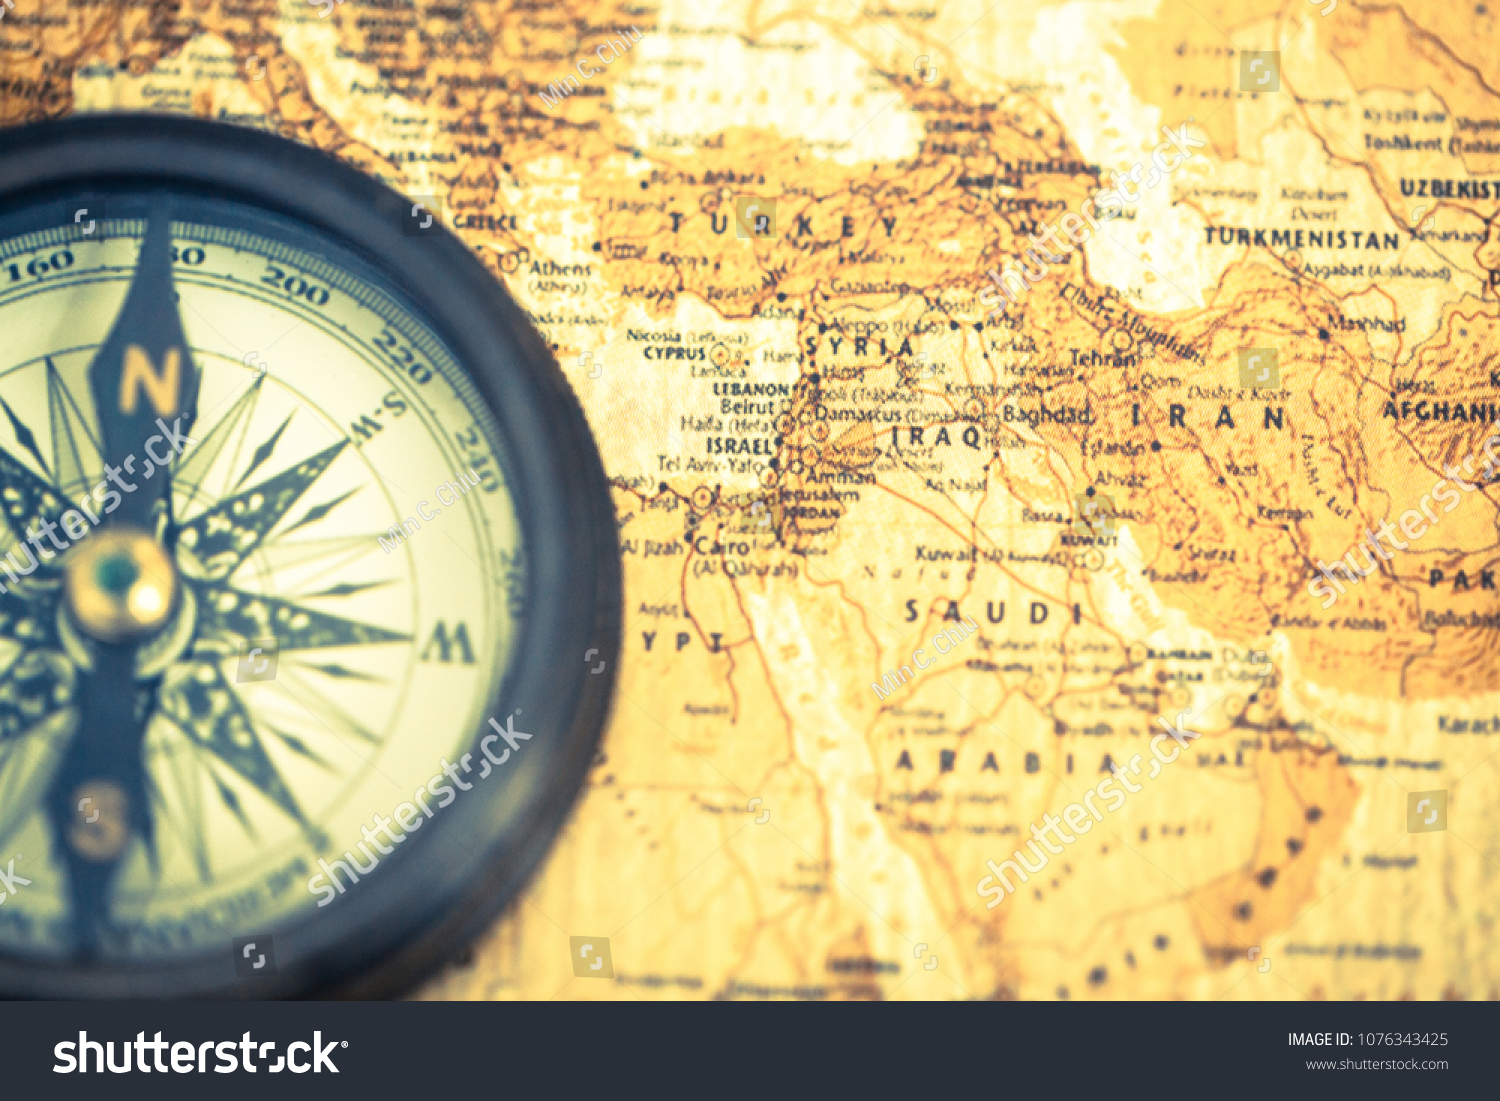 Old compass on vintage world map stock photo edit now 1076343425 an old compass on vintage world map compass on map background close up gumiabroncs Choice Image